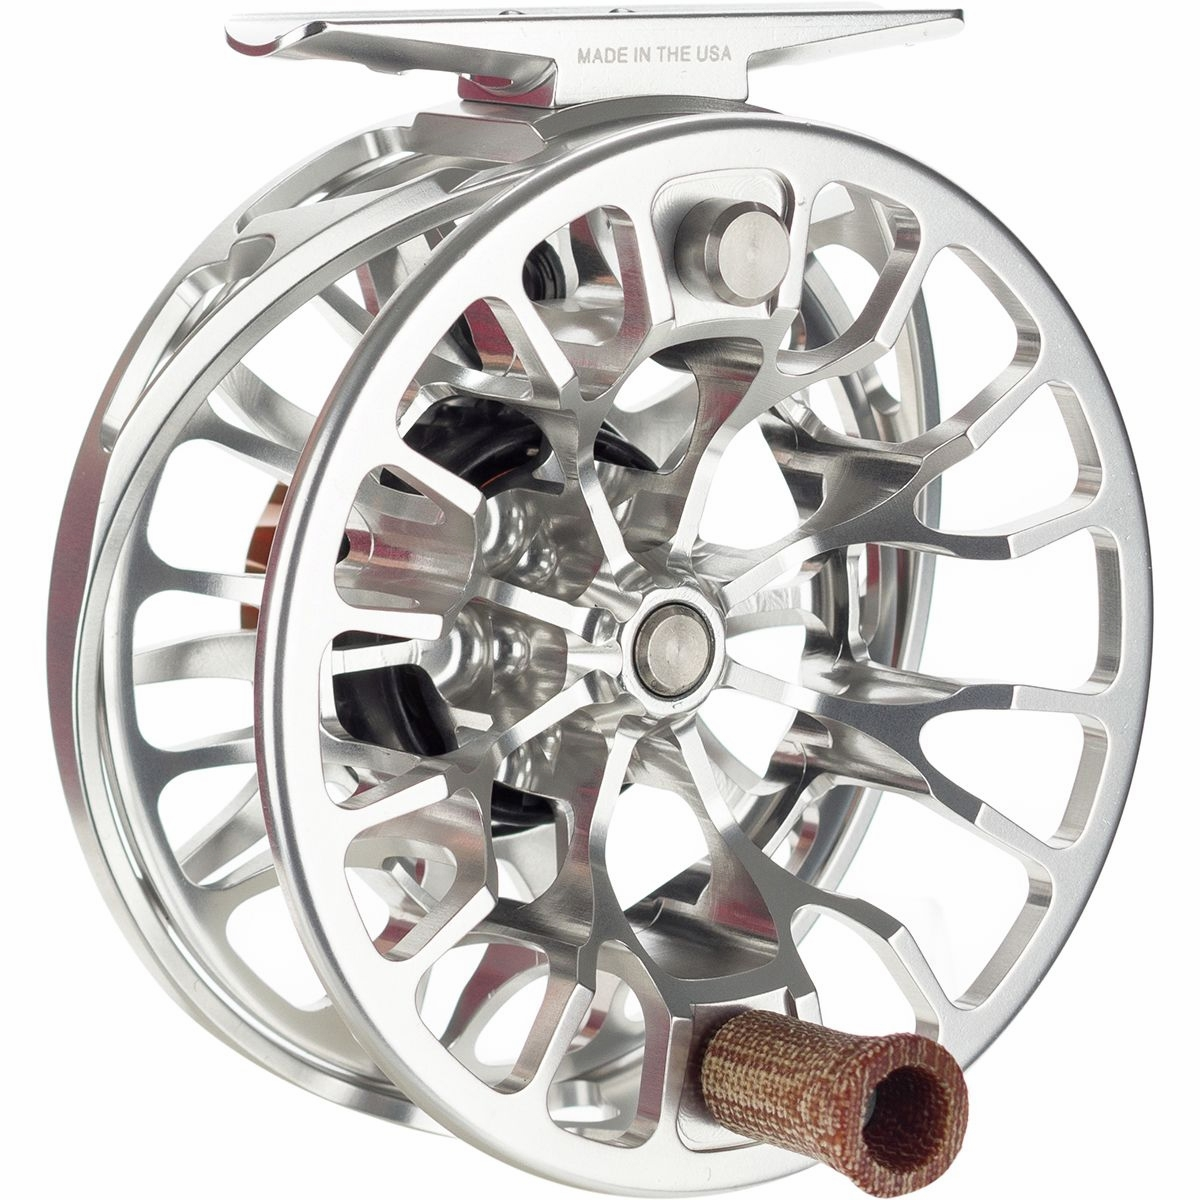 FREE US SHIPPING IN STOCK NEW 2019 ROSS ANIMAS #7//8 FLY REEL PLATINUM-USA MADE